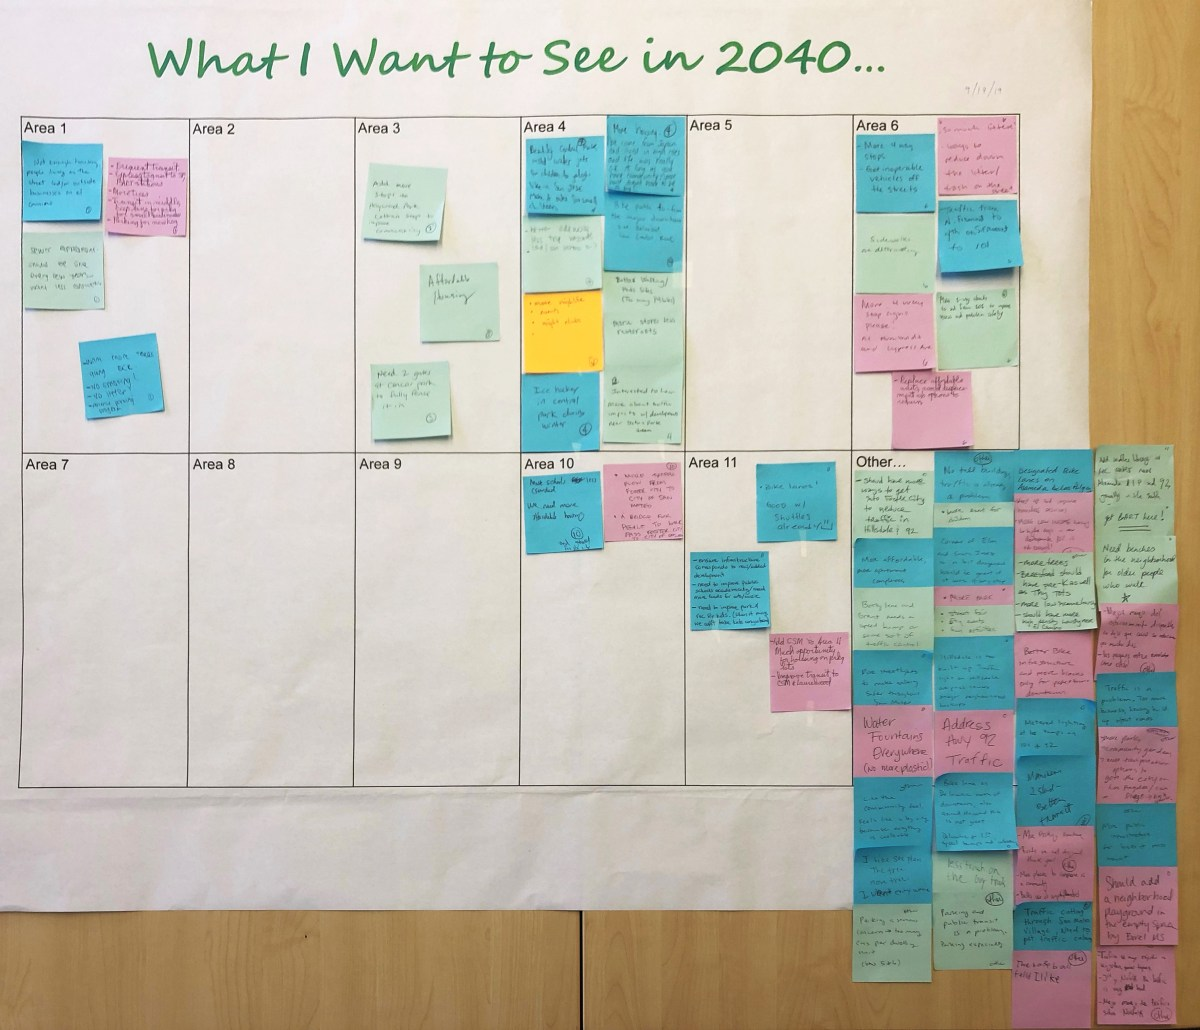 What I want to see in 2040 exercise index cards, September 19